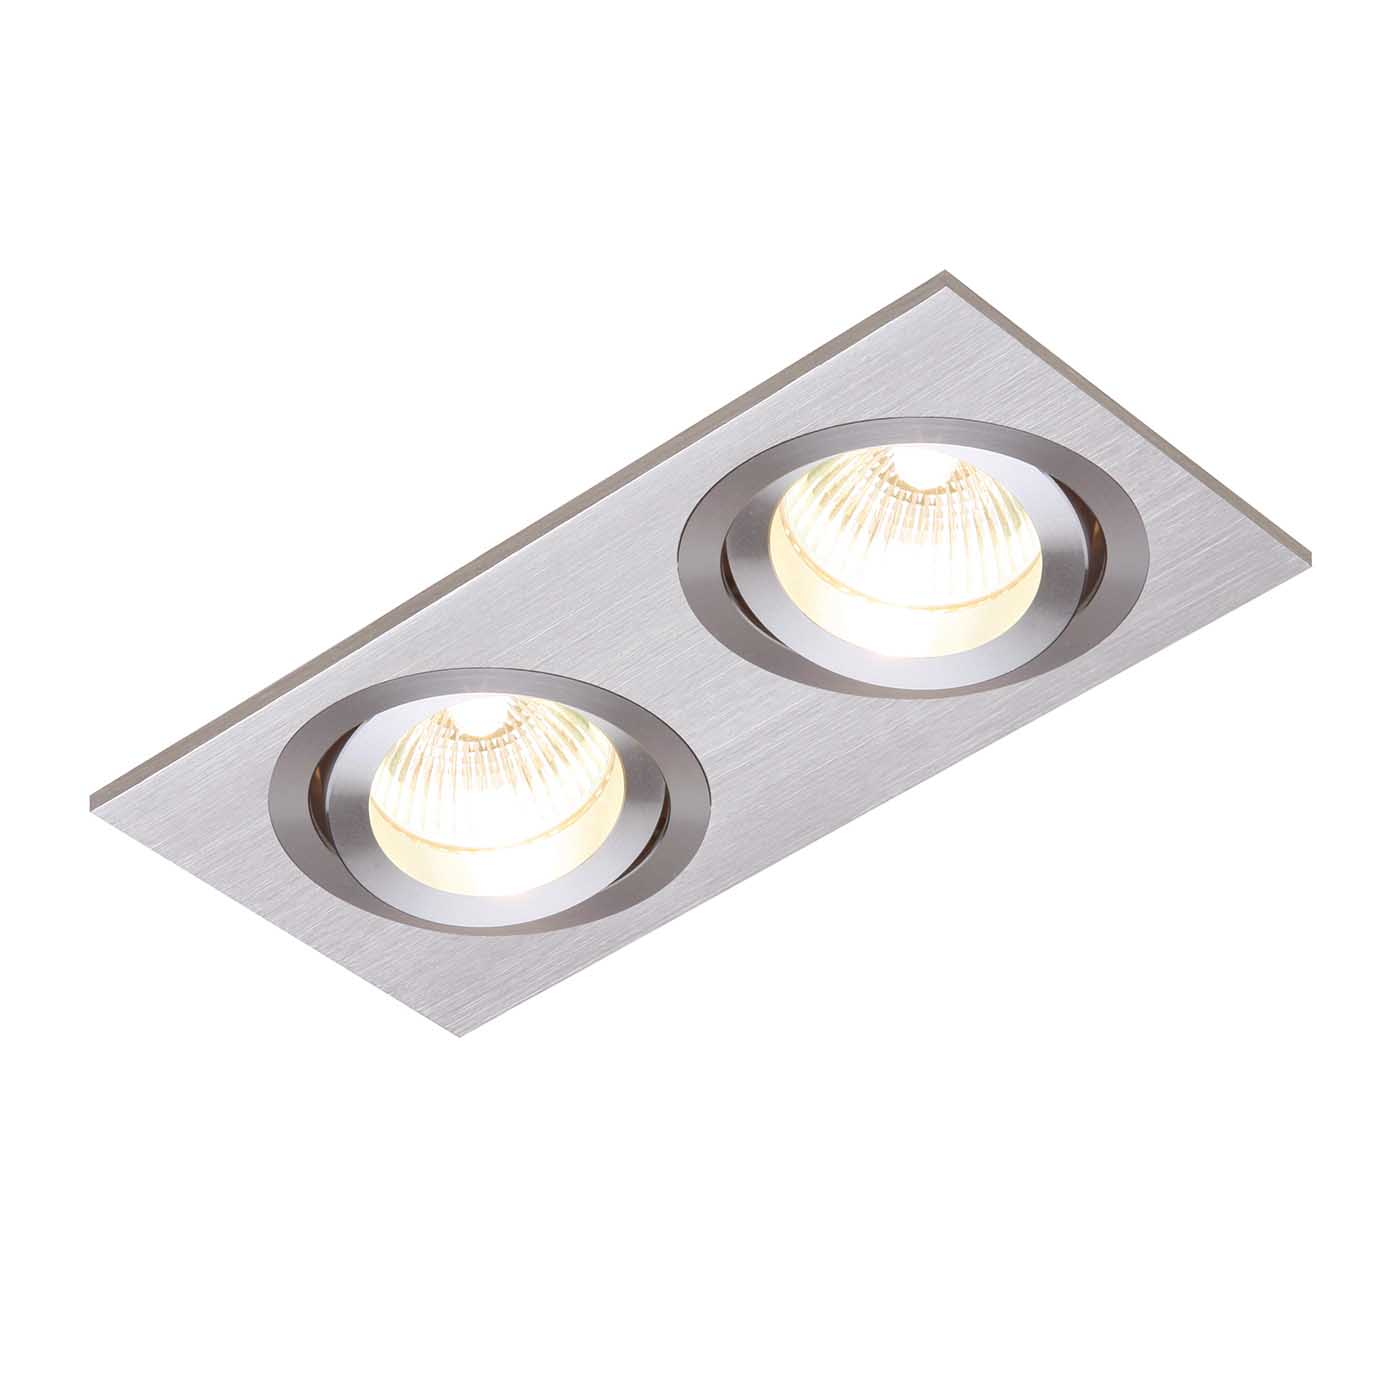 Saxby Tetra Indoor Recessed Tilt Light Brushed Silver Anodised 2x50W GU10